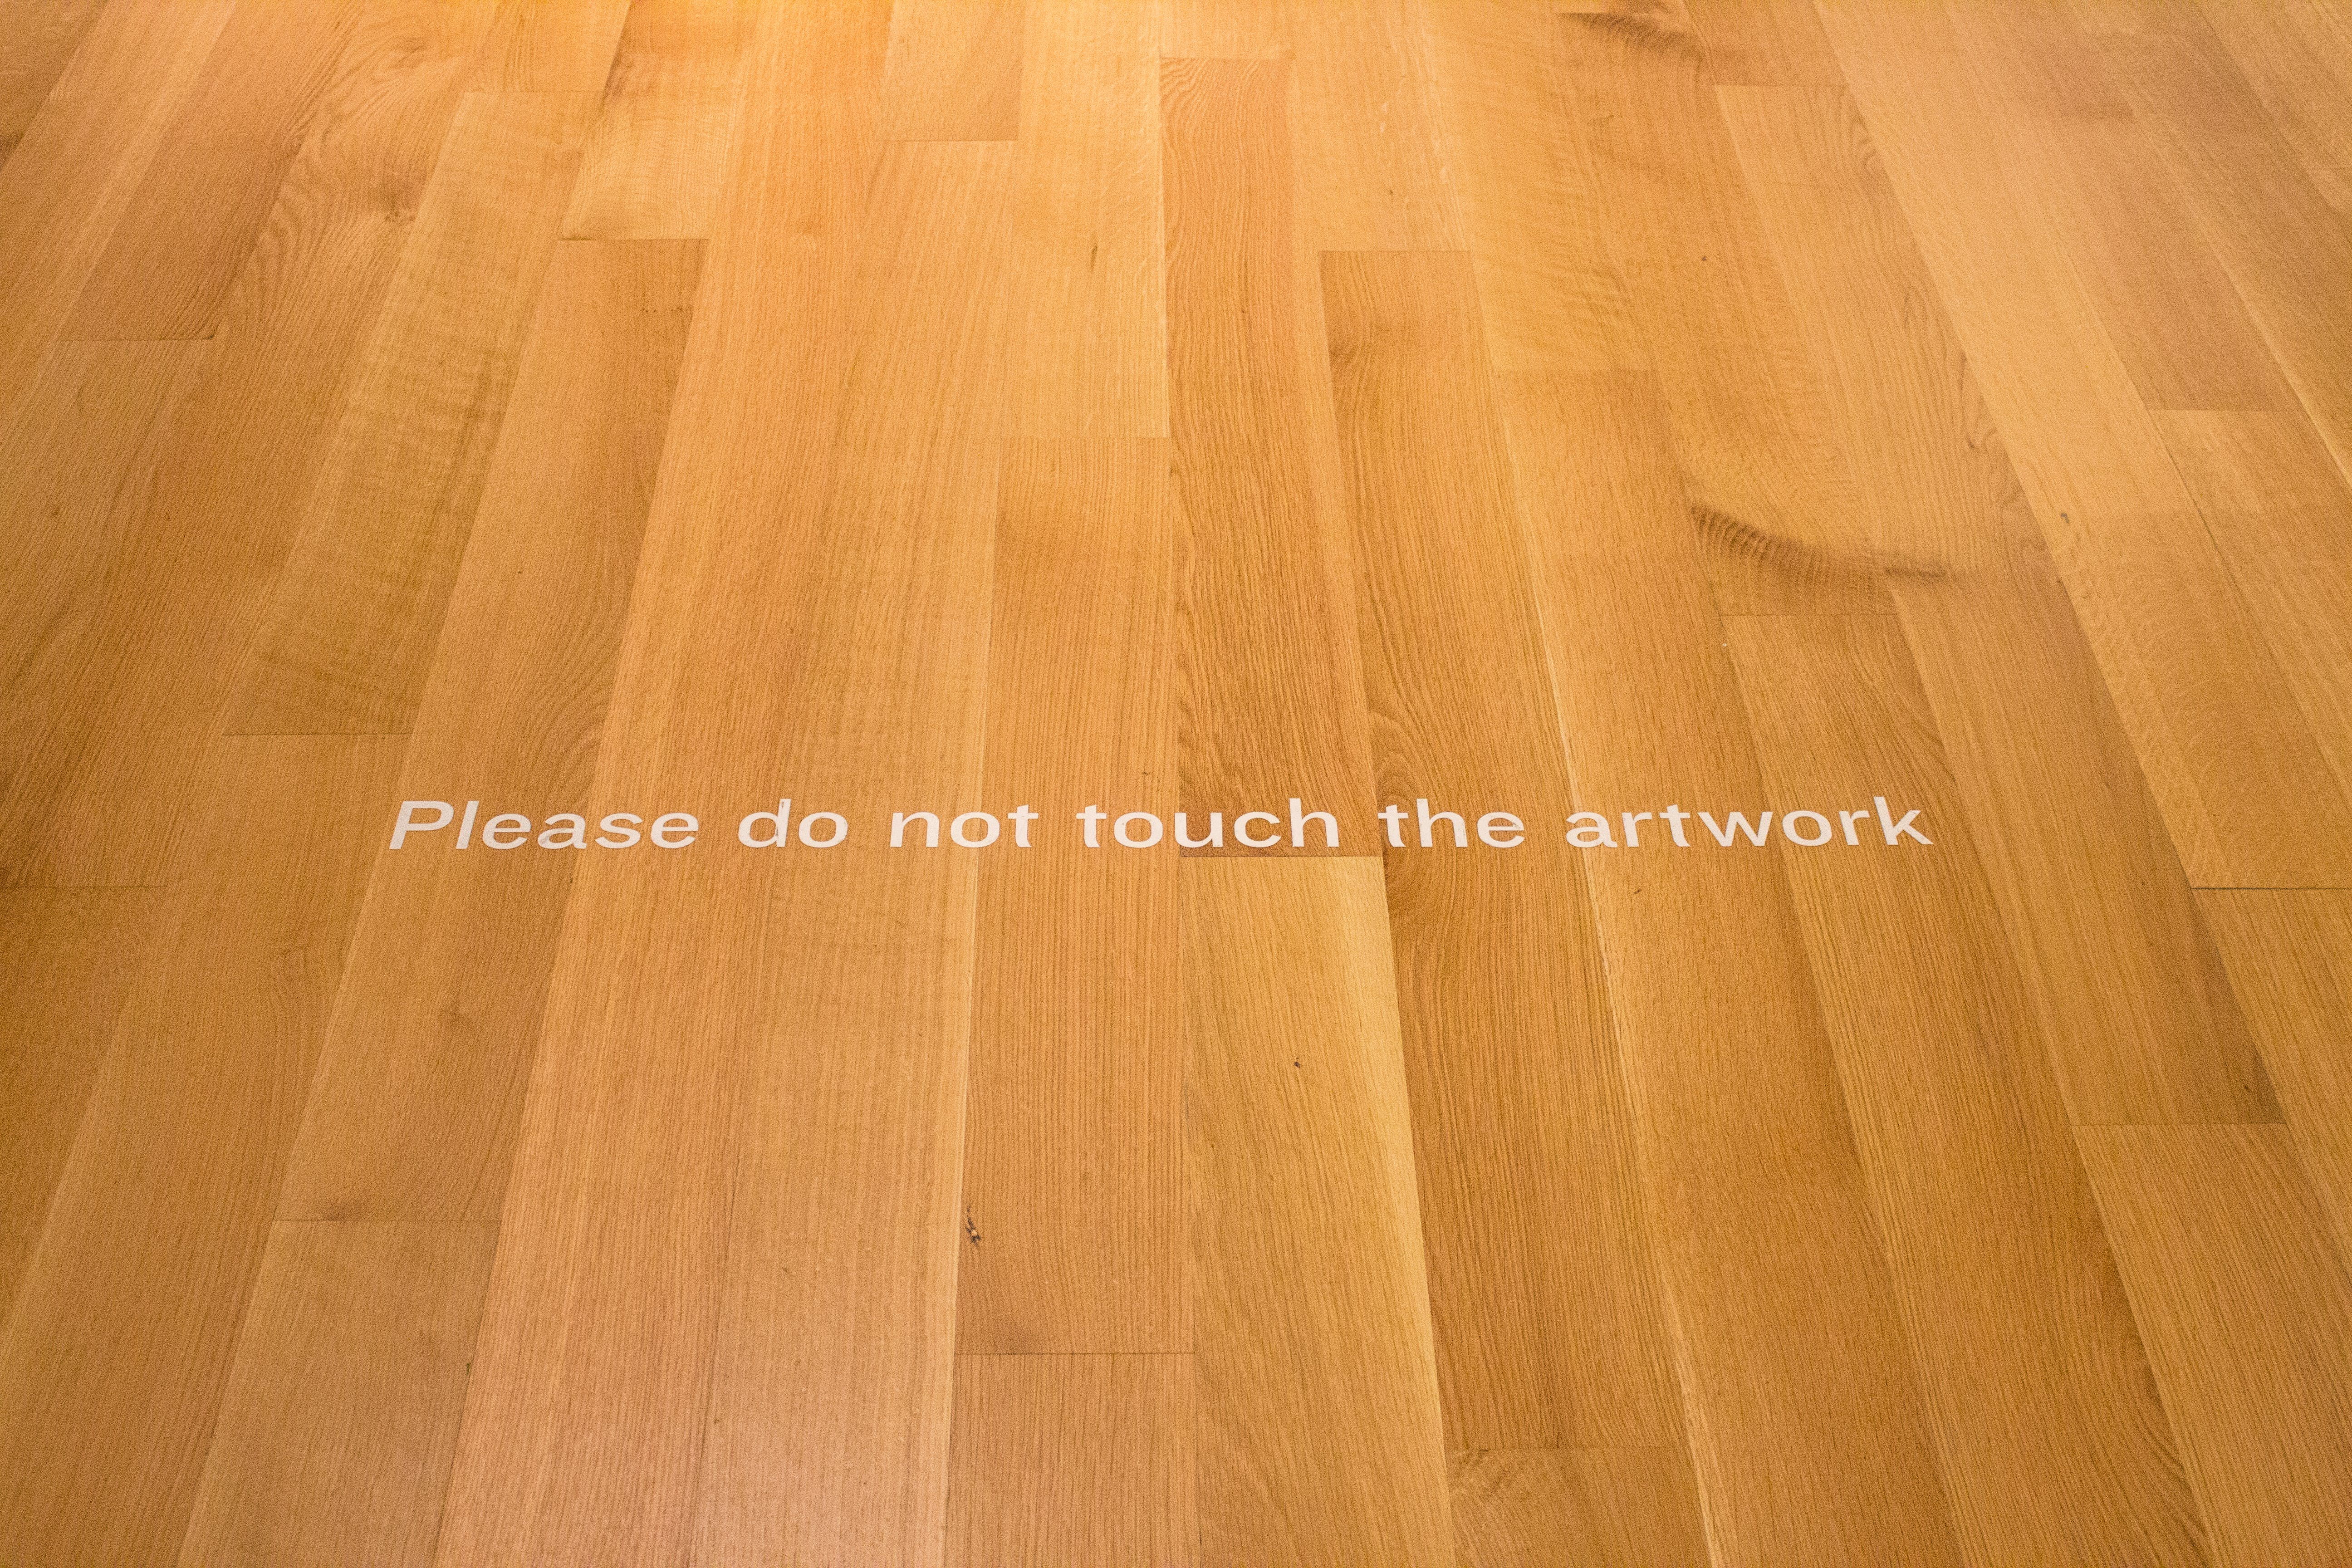 Free stock photo of art, artwork, don't touch, don't touch artwork